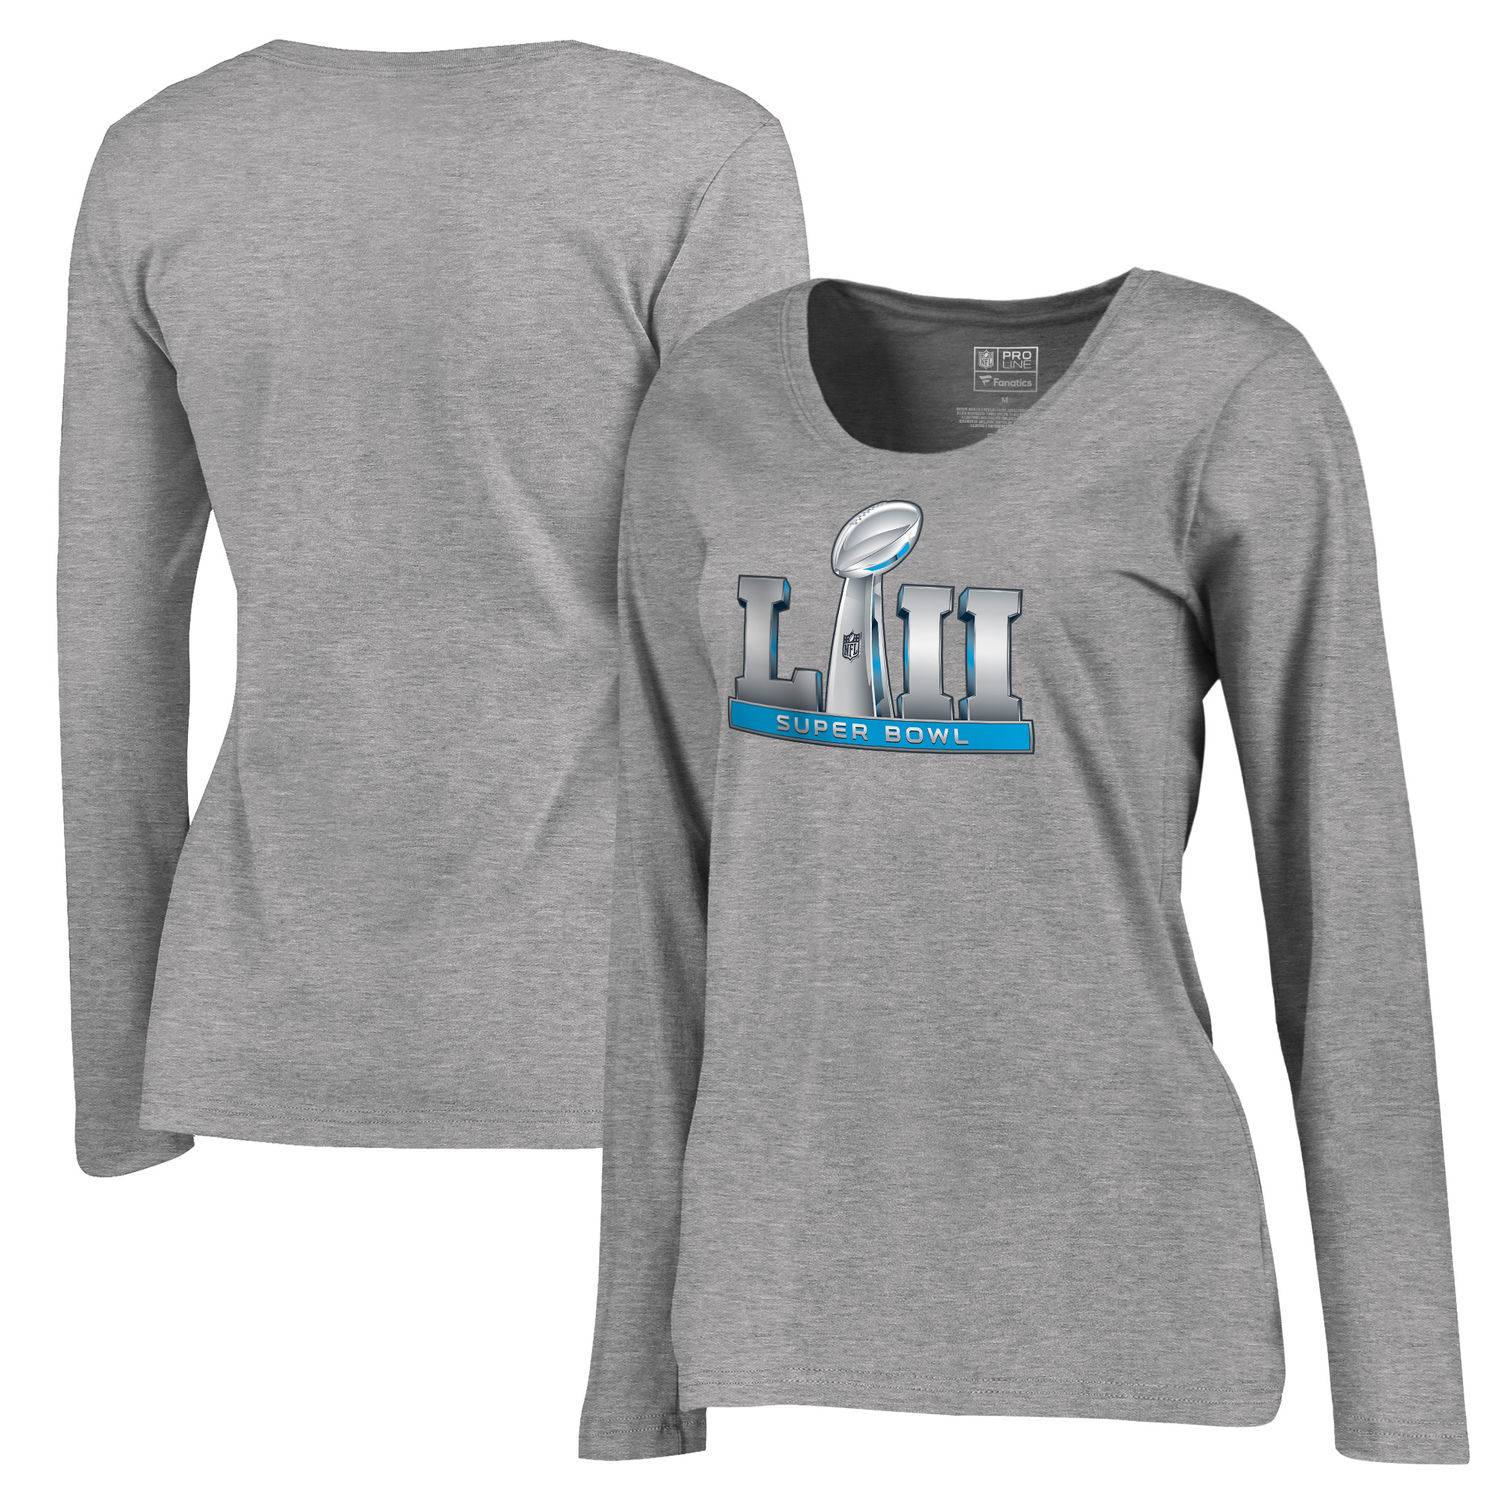 Women's NFL Pro Line by Fanatics Branded Heather Gray Super Bowl LII Event Plus Size V Neck Long Sleeve T Shirt